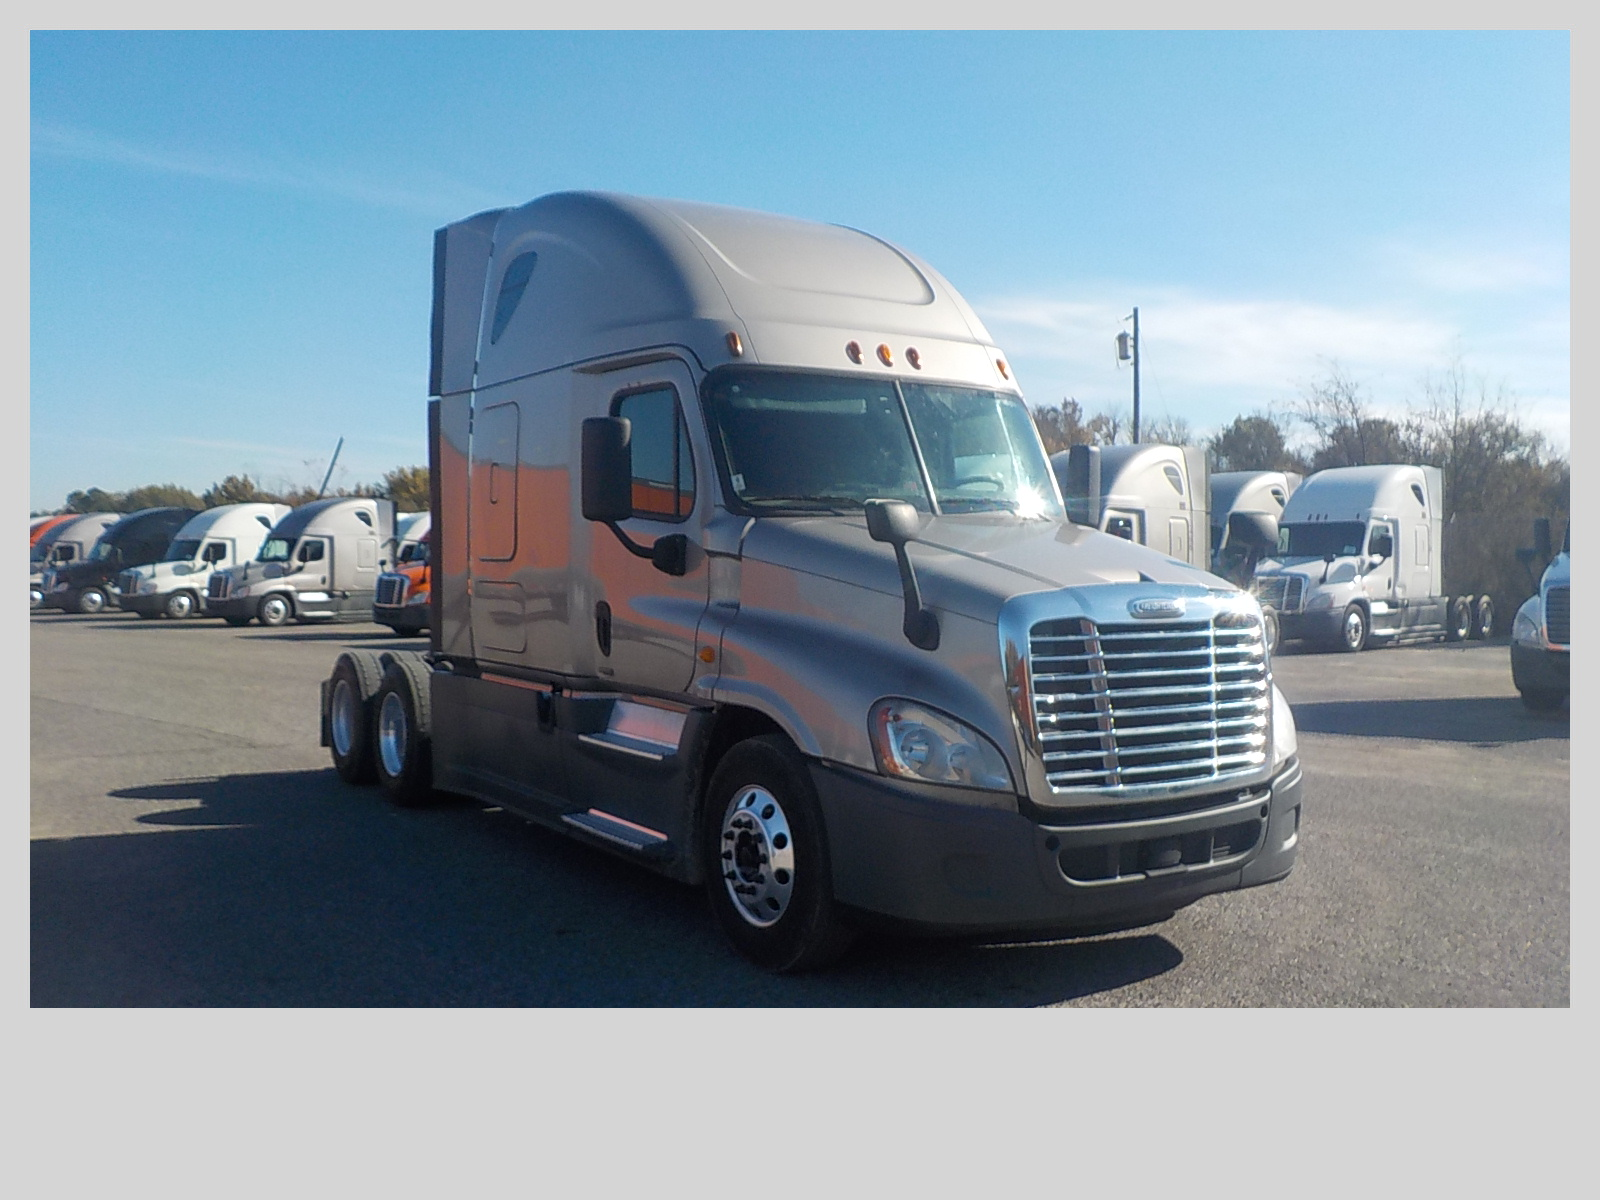 USED 2015 FREIGHTLINER CASCADIA SLEEPER TRUCK #84058